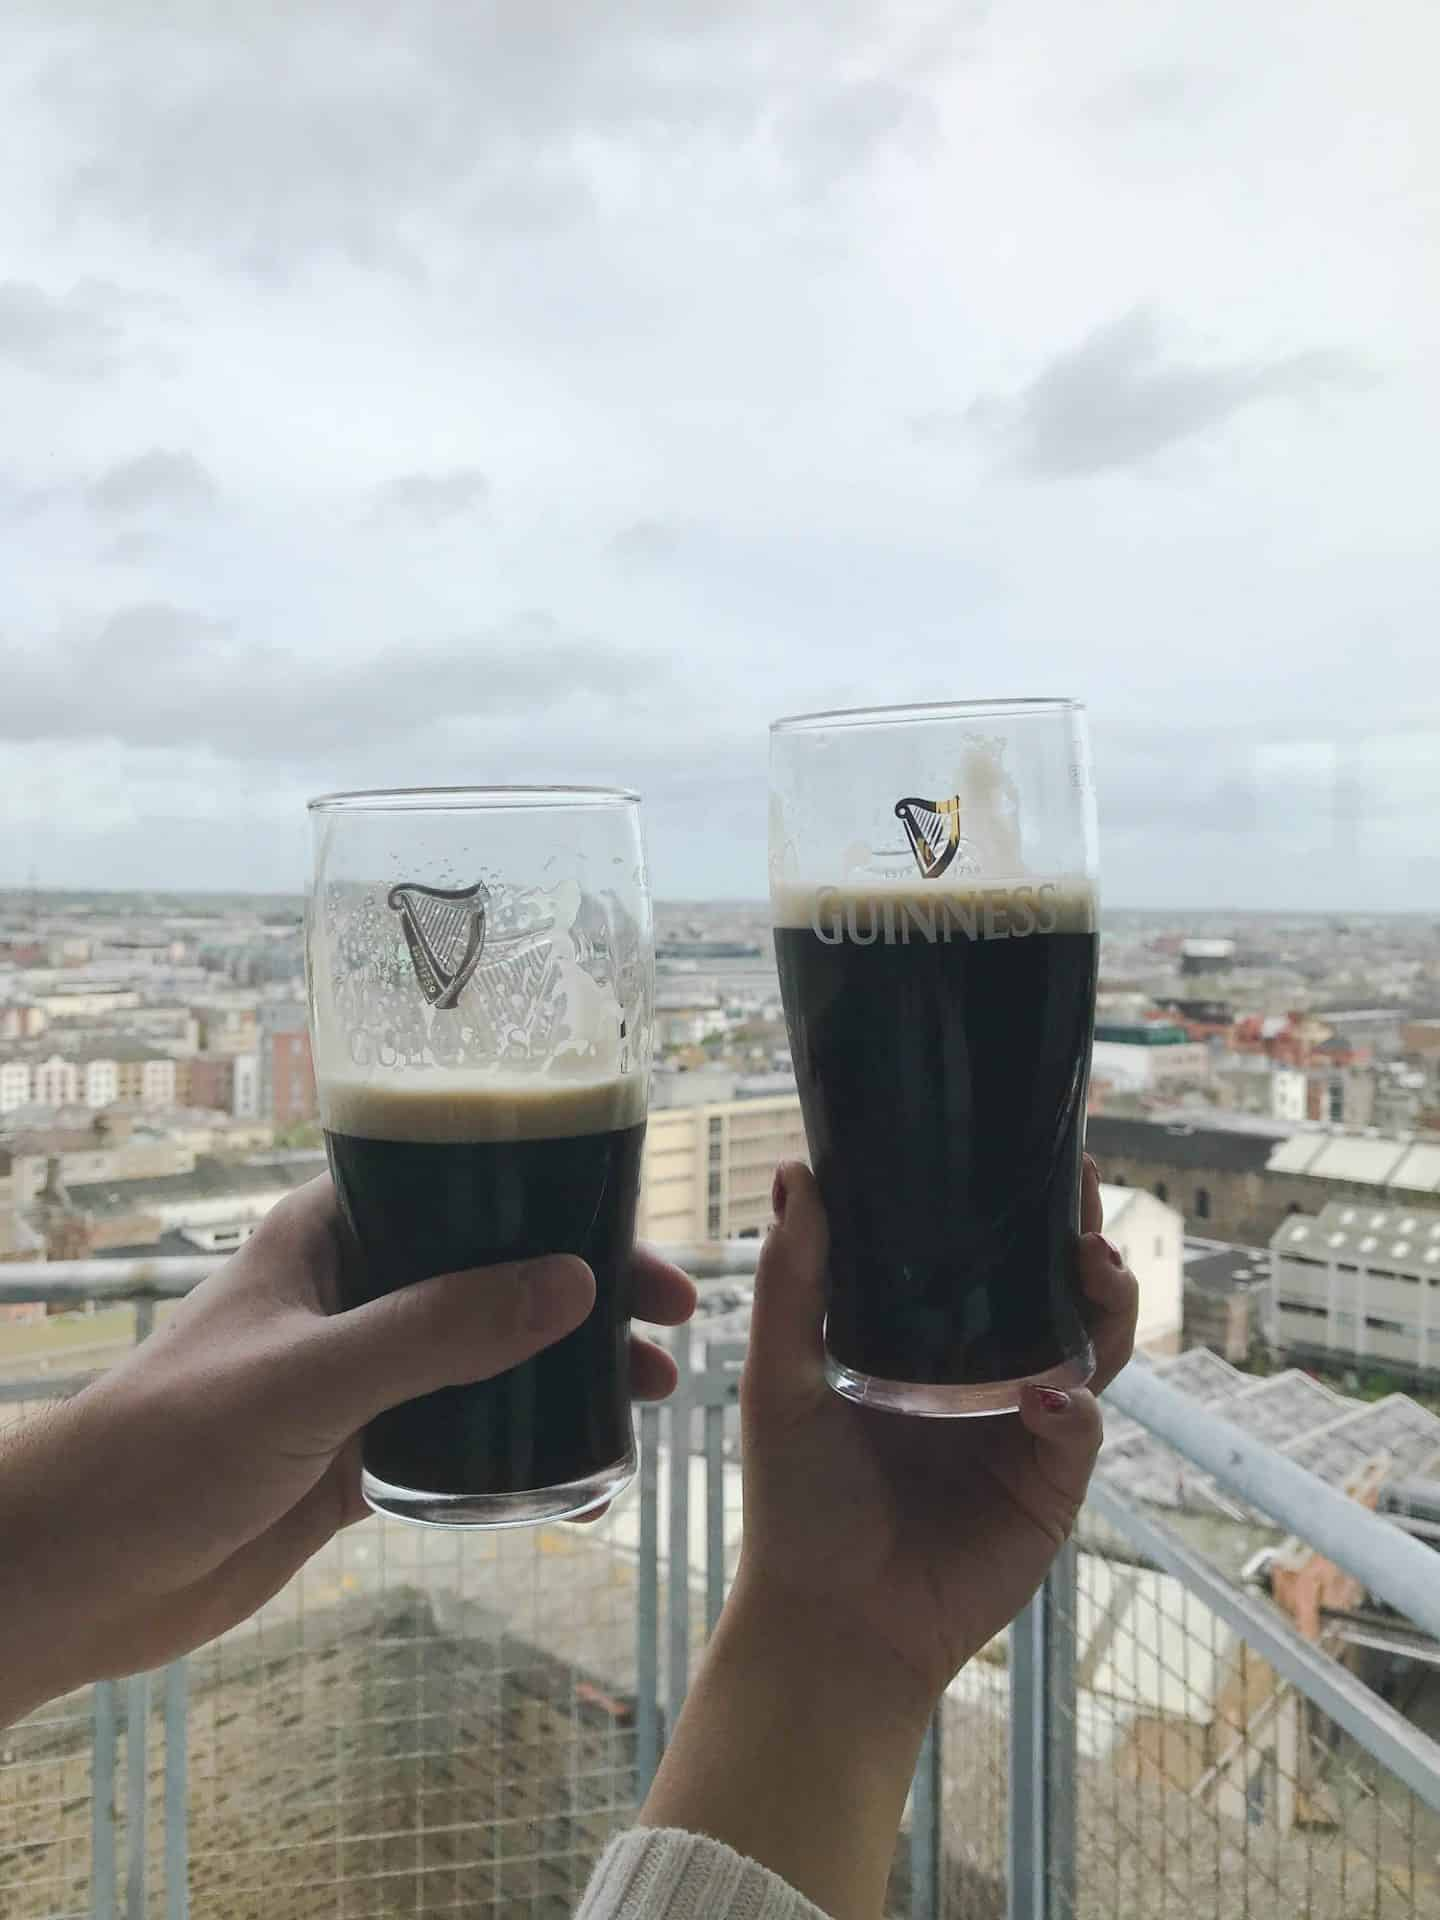 The Guinness Storehouse is one of the best stops along your Ireland road trip itinerary